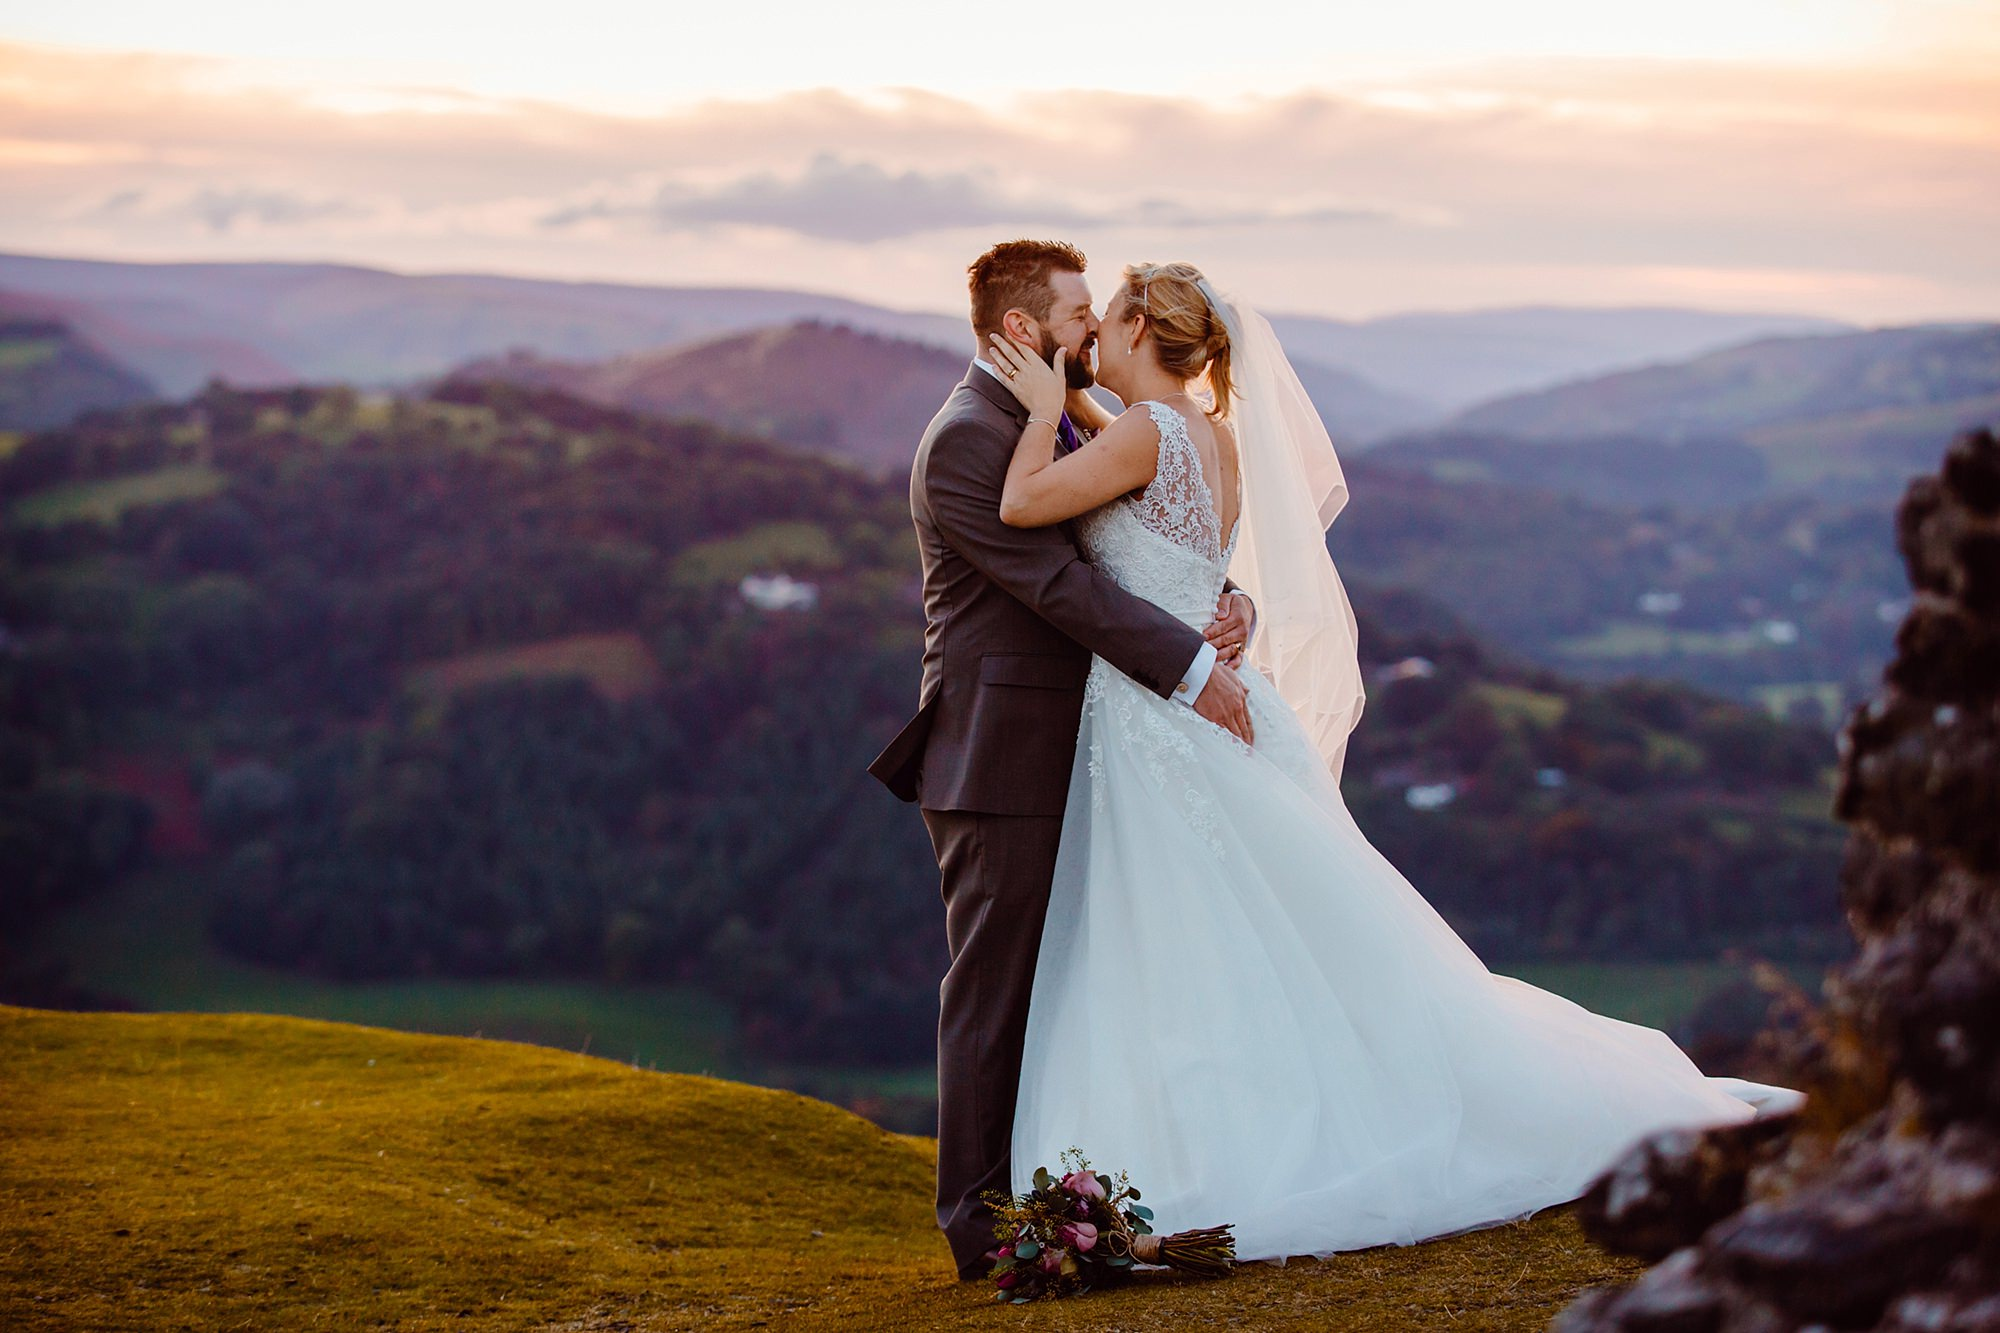 Castell dinas bran wedding photography portrait of a bride kissing her groom at sunset